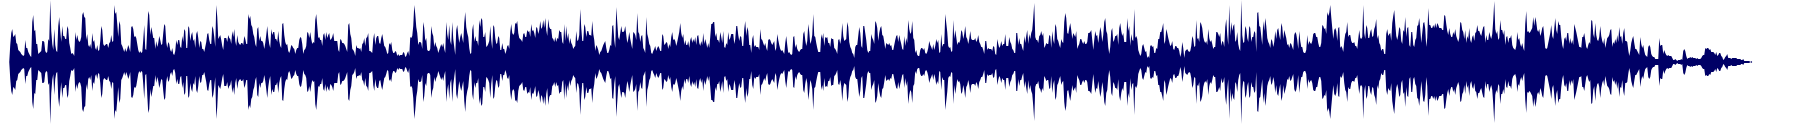 waveform of track #88430